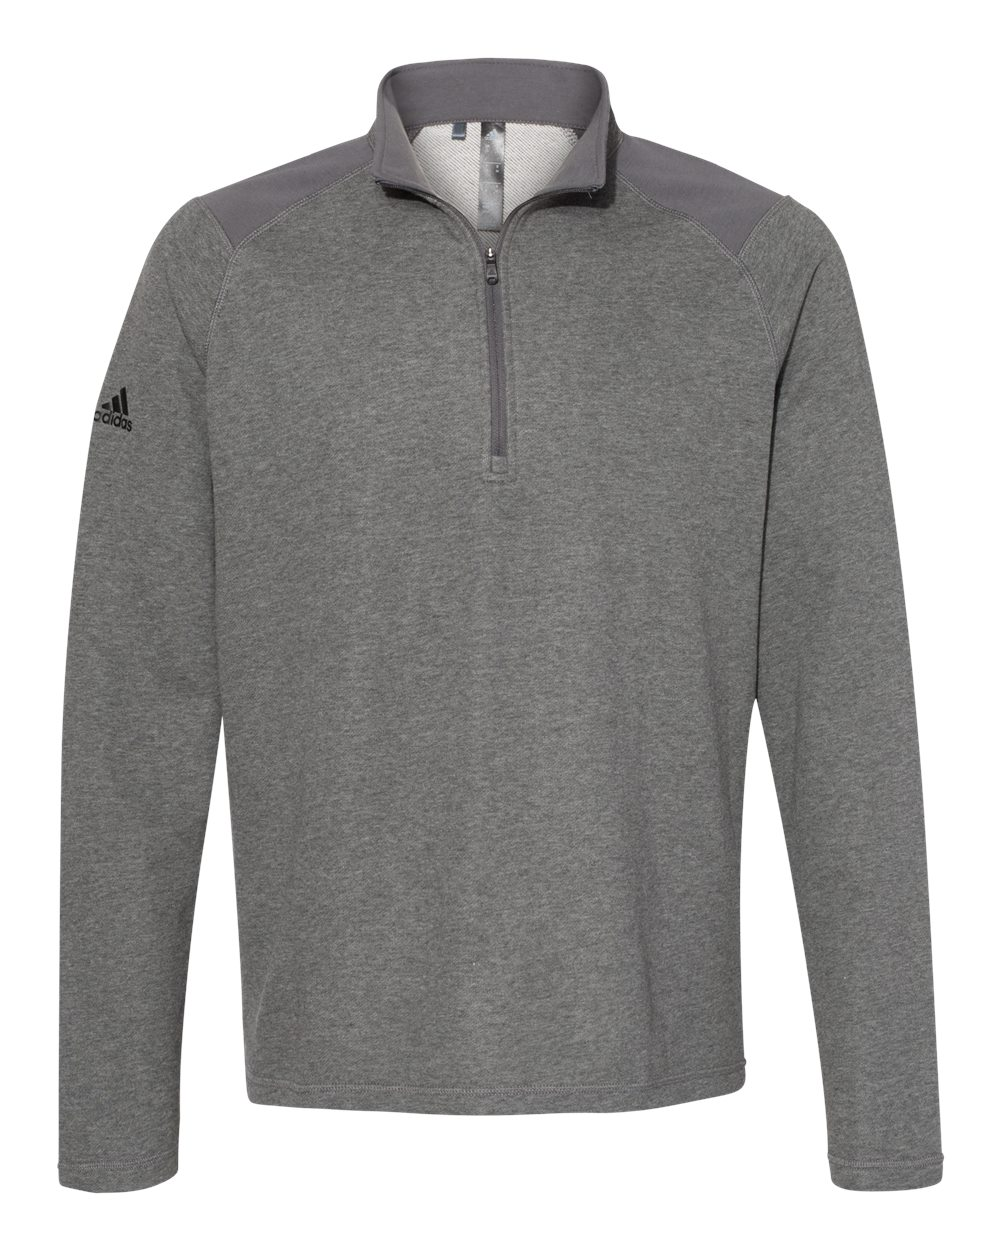 Adidas A463 - Heathered Quarter Zip Pullover with Colorblocked ...